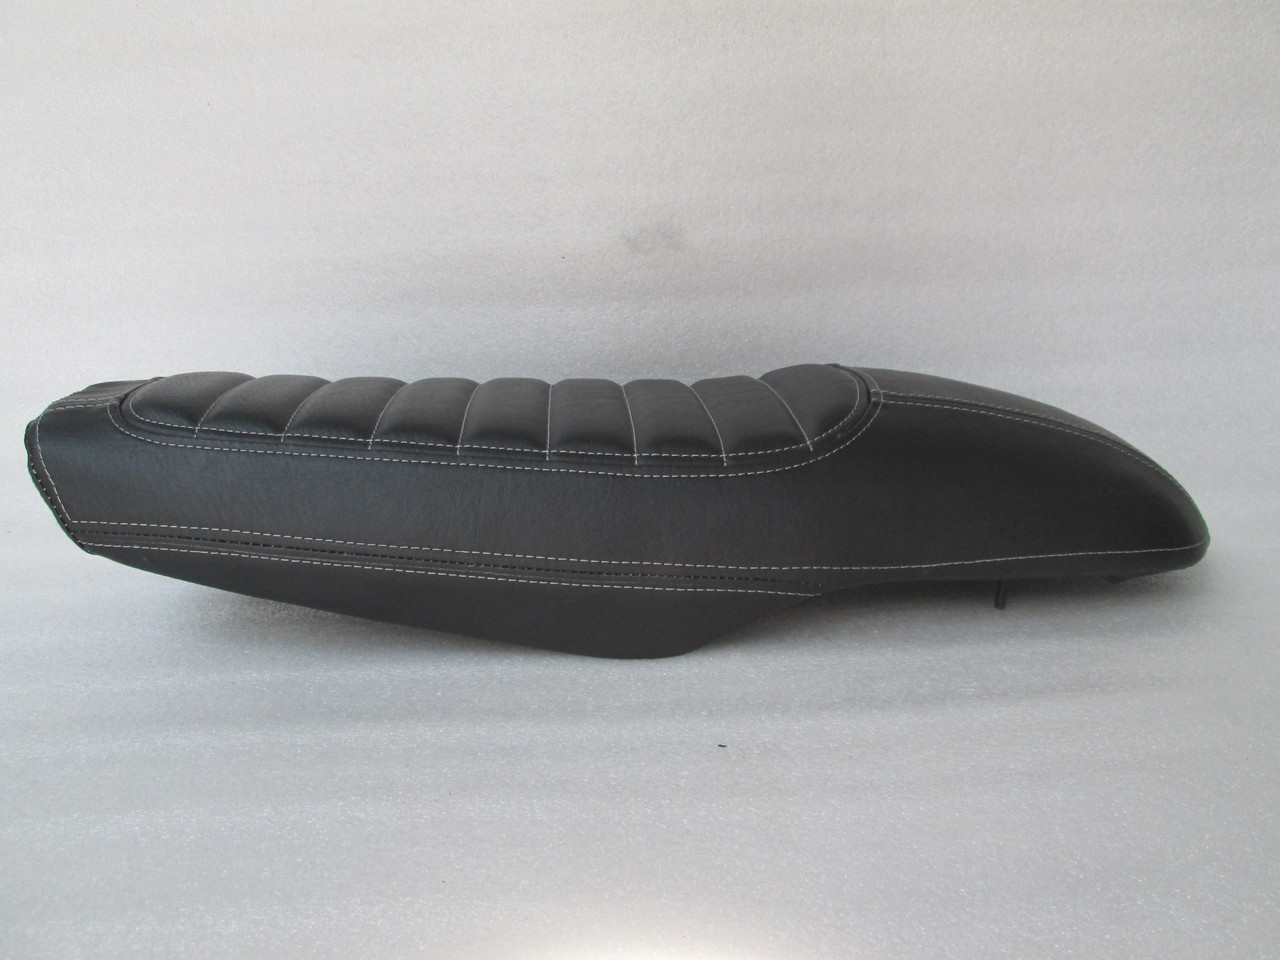 1978 - 1981 Honda CX500 Deluxe Standard or CX400 Classic Cafe Racer Seat with modified seat pan *black with grey stitching*  #4203